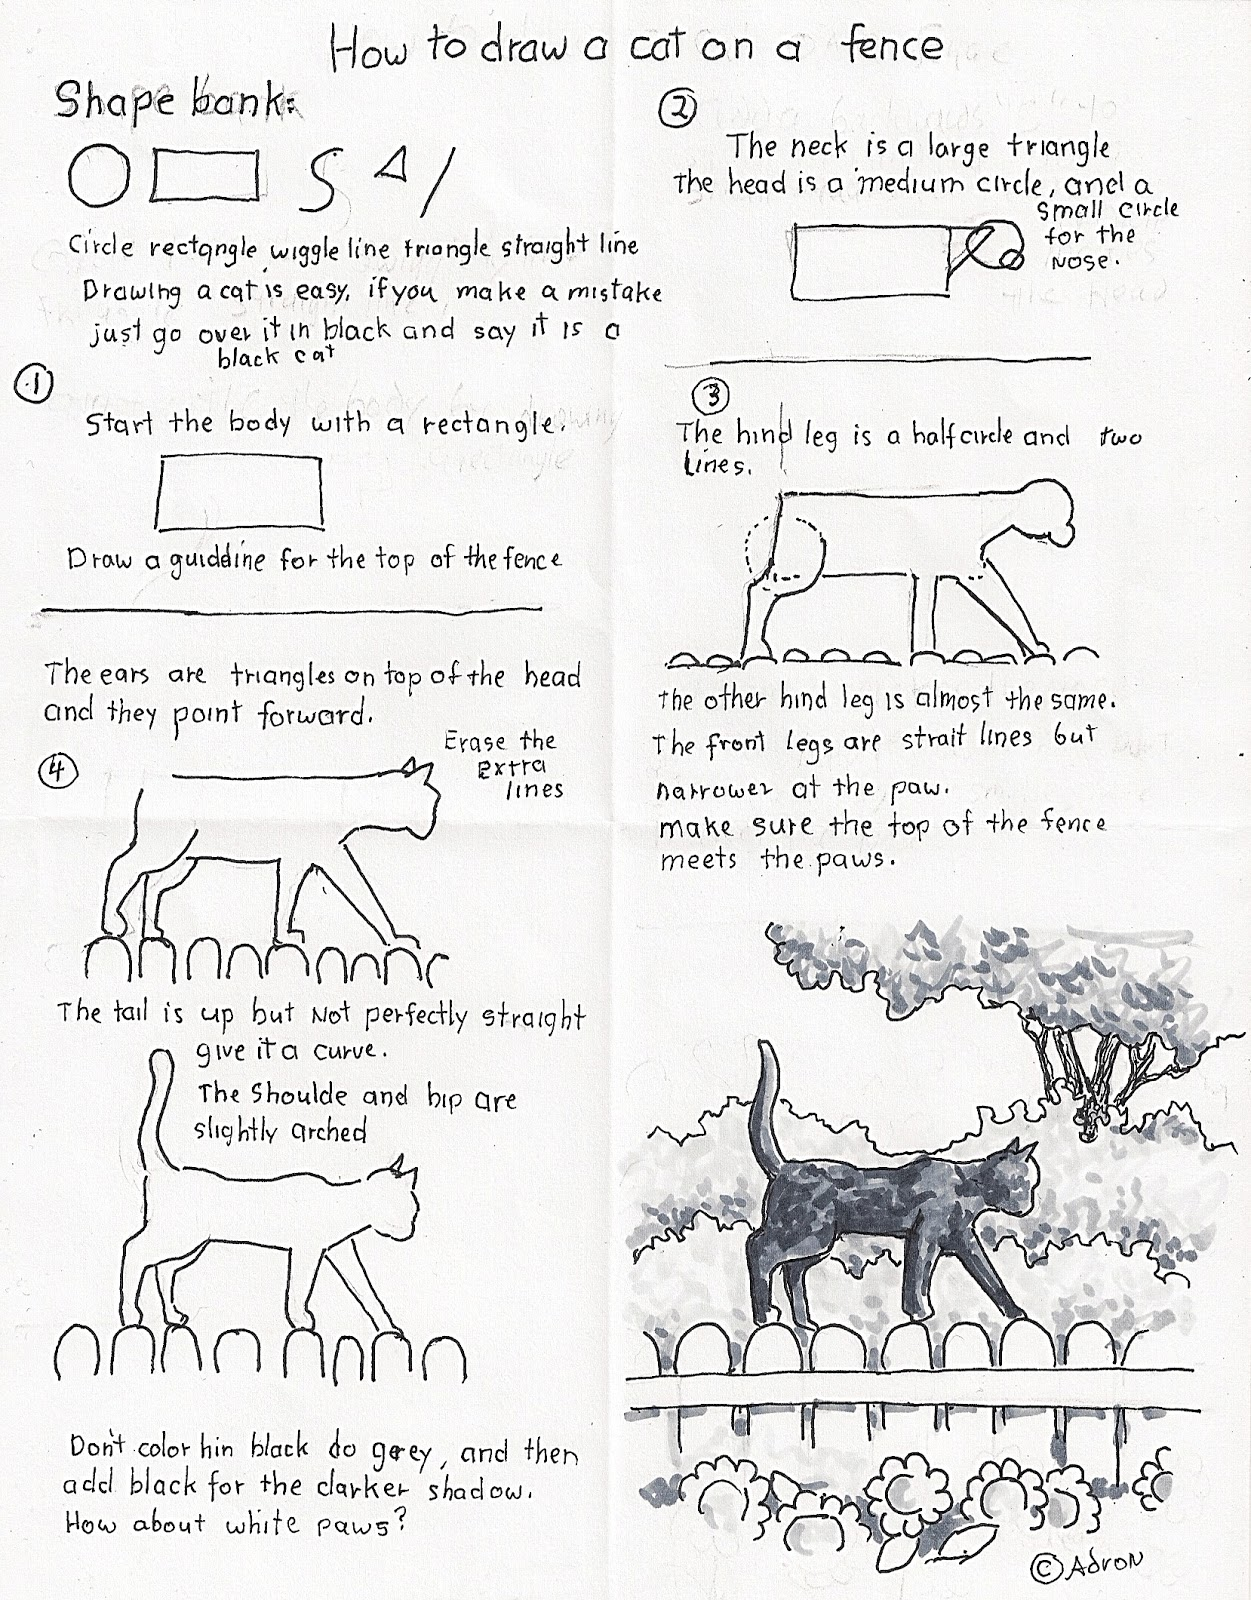 worksheet Draw The Other Half Of The Picture Worksheet how to draw worksheets for the young artist a black cat worksheet c adron 2011